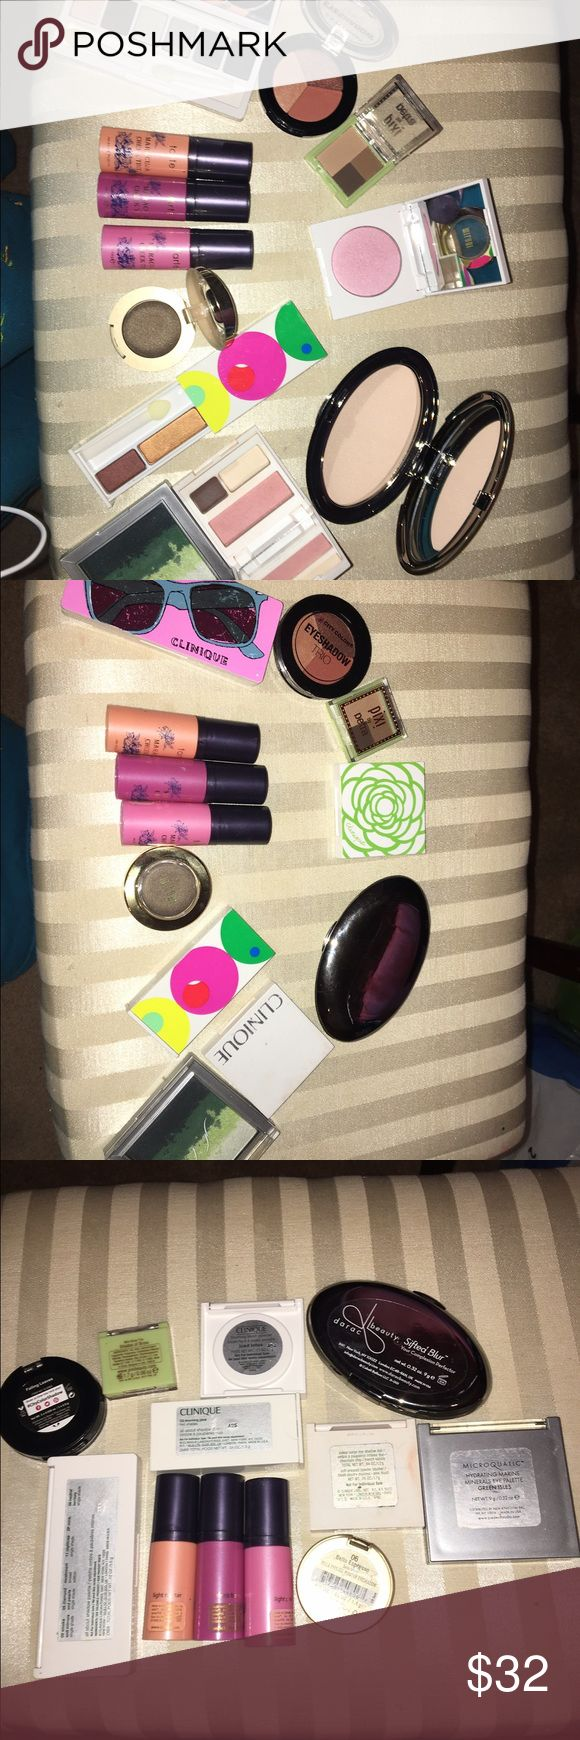 Make up bundle 😇 Never used, if any discoloration to the packaging it's from sitting in my make up drawer. :)  1 Clinique Eyeshadow mini palette  1 Clinique Eyeshadow duo 1 Clinique Blush  1 Clinique Eyeshadow & Blush combo 3 Tarte Blush stains  1 Milani Eyeshadow pod 1 Pixi mini eyebrow kit + more & samples Clinique Makeup Eyeshadow